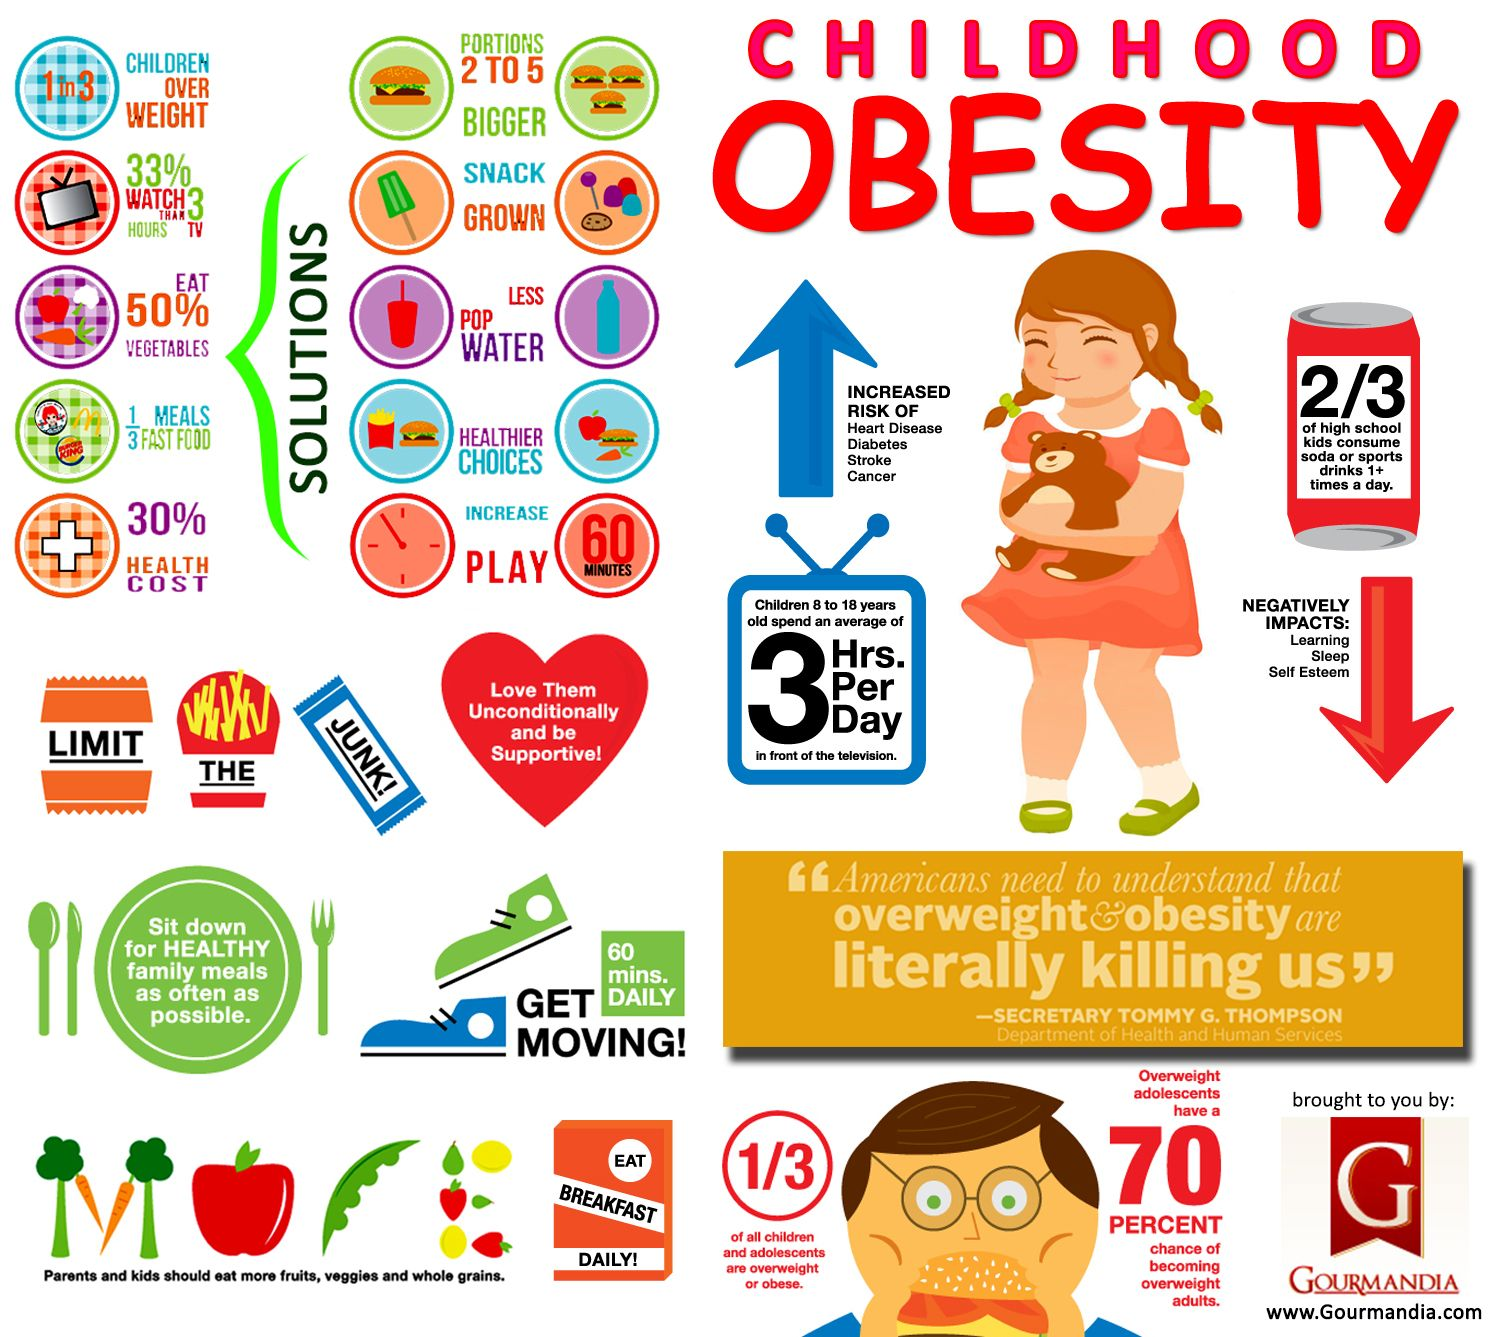 best images about obesity and public health 17 best images about obesity and public health heart disease childhood obesity and fruits and vegetables